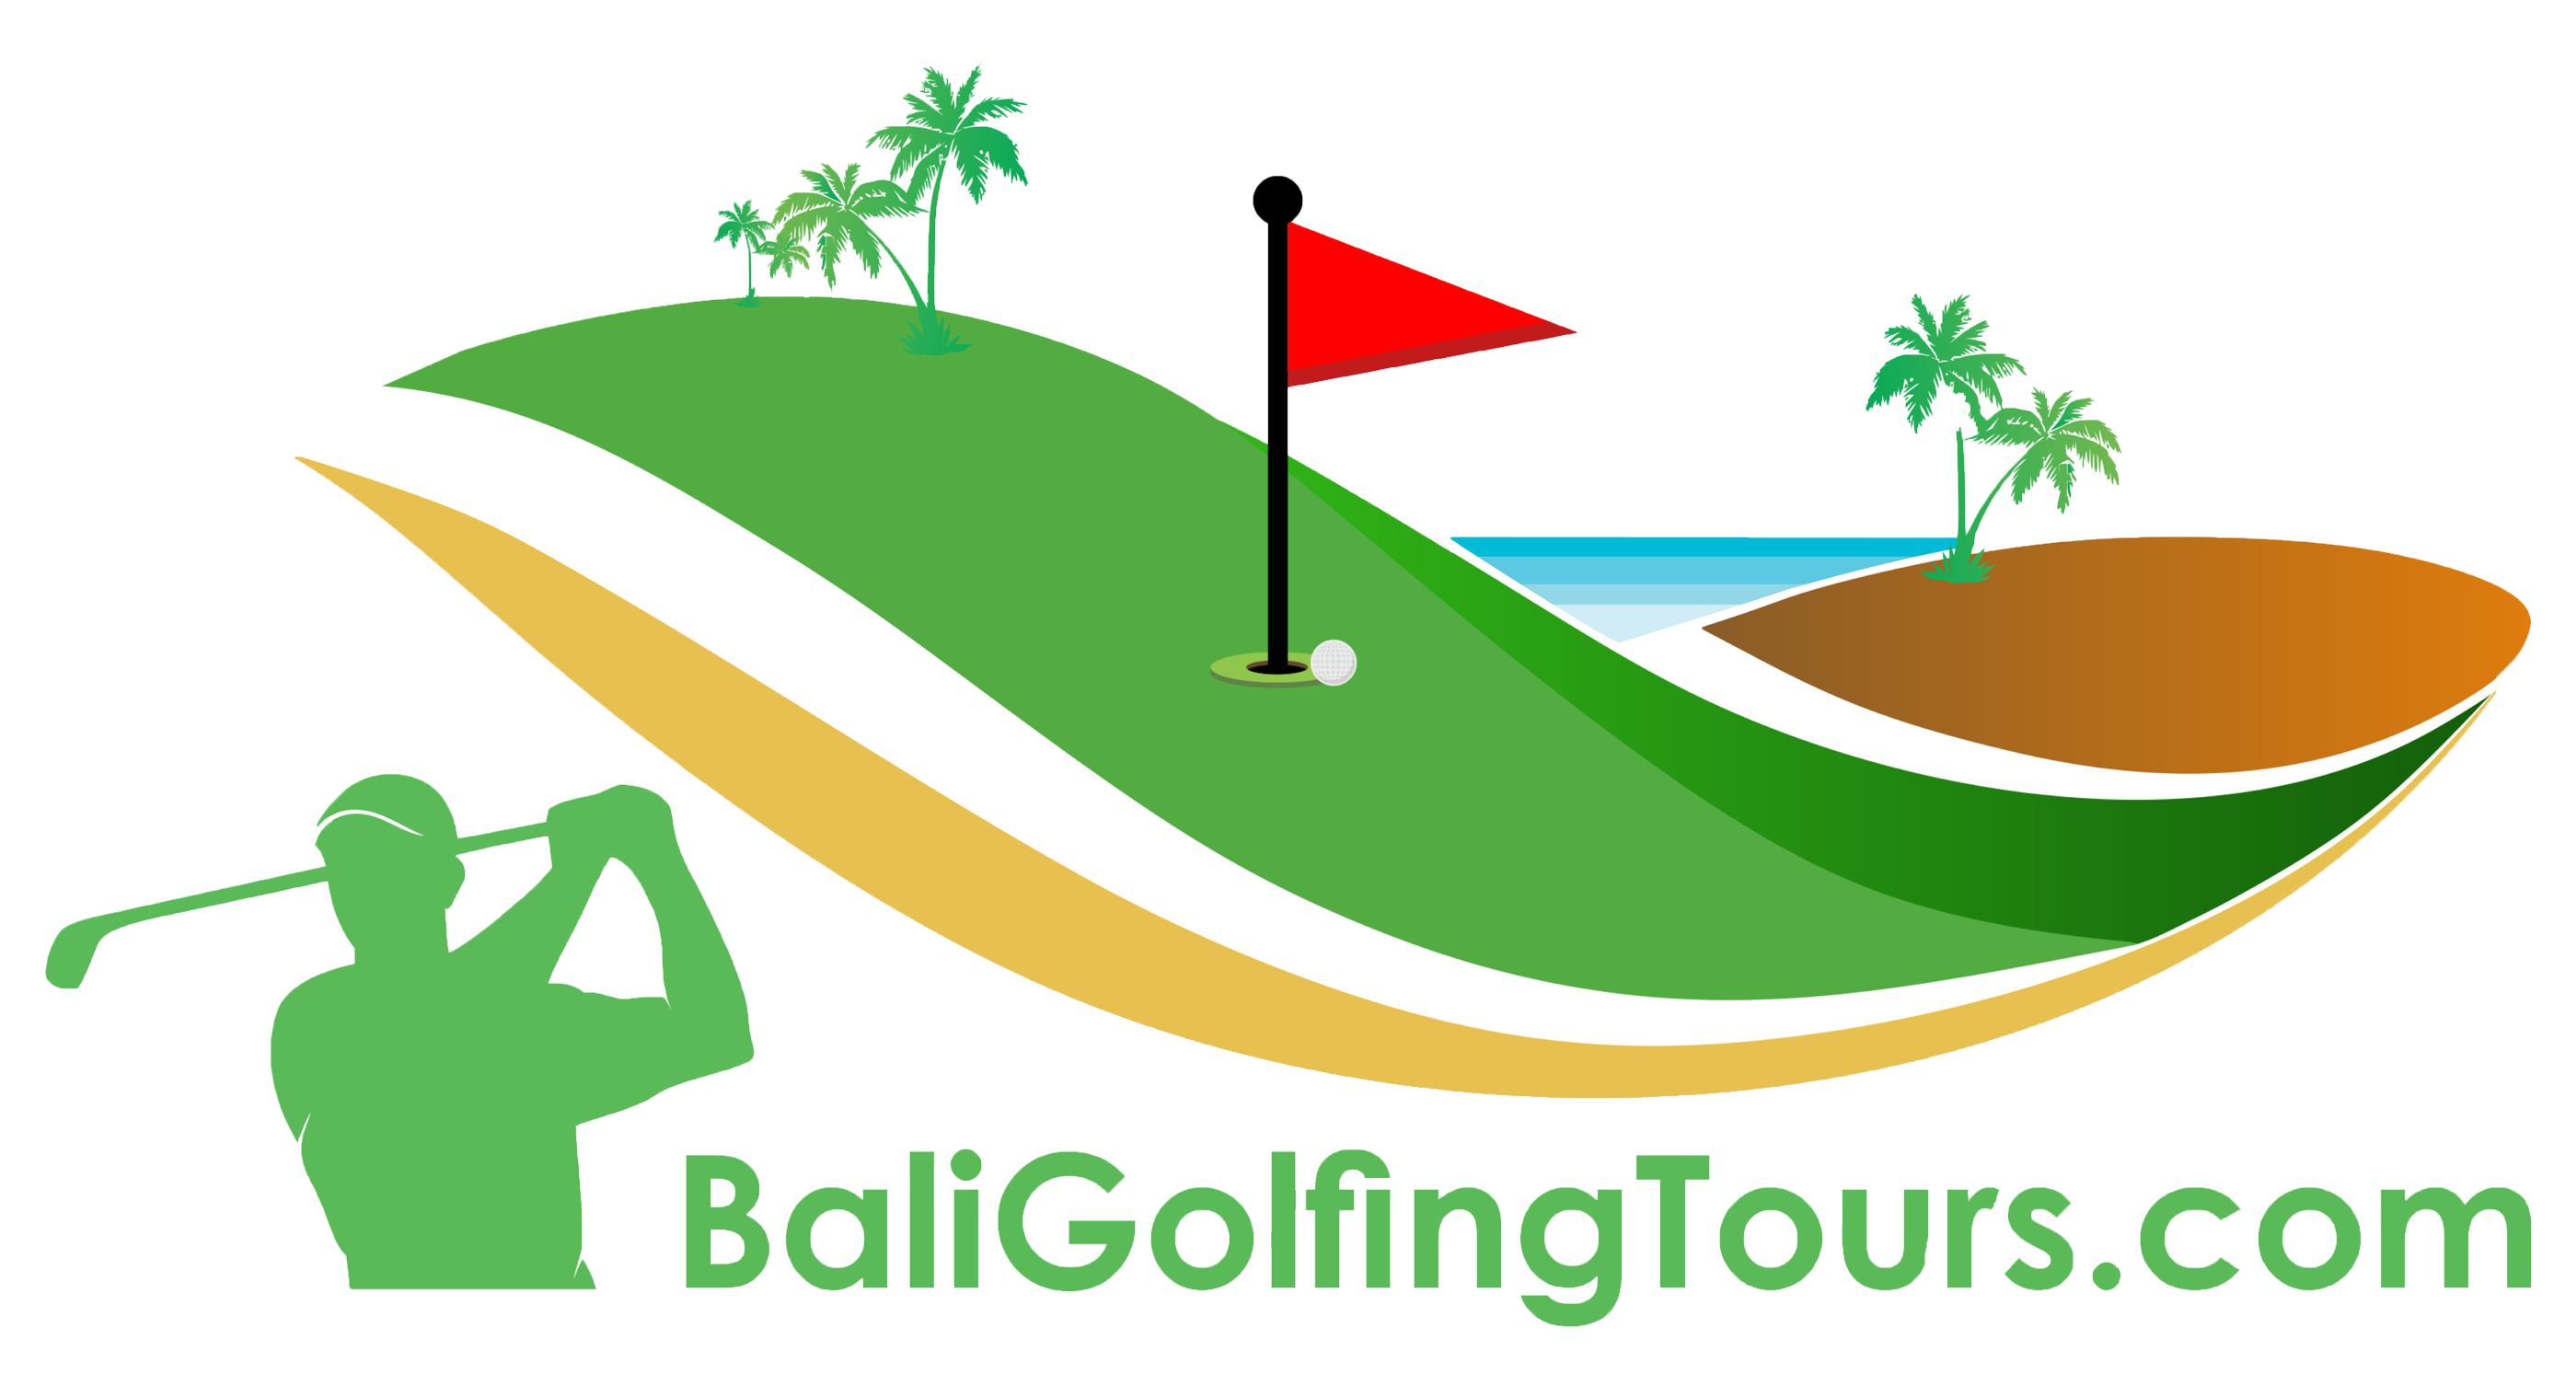 Golfer clipart golf green. Home bali golfing tours